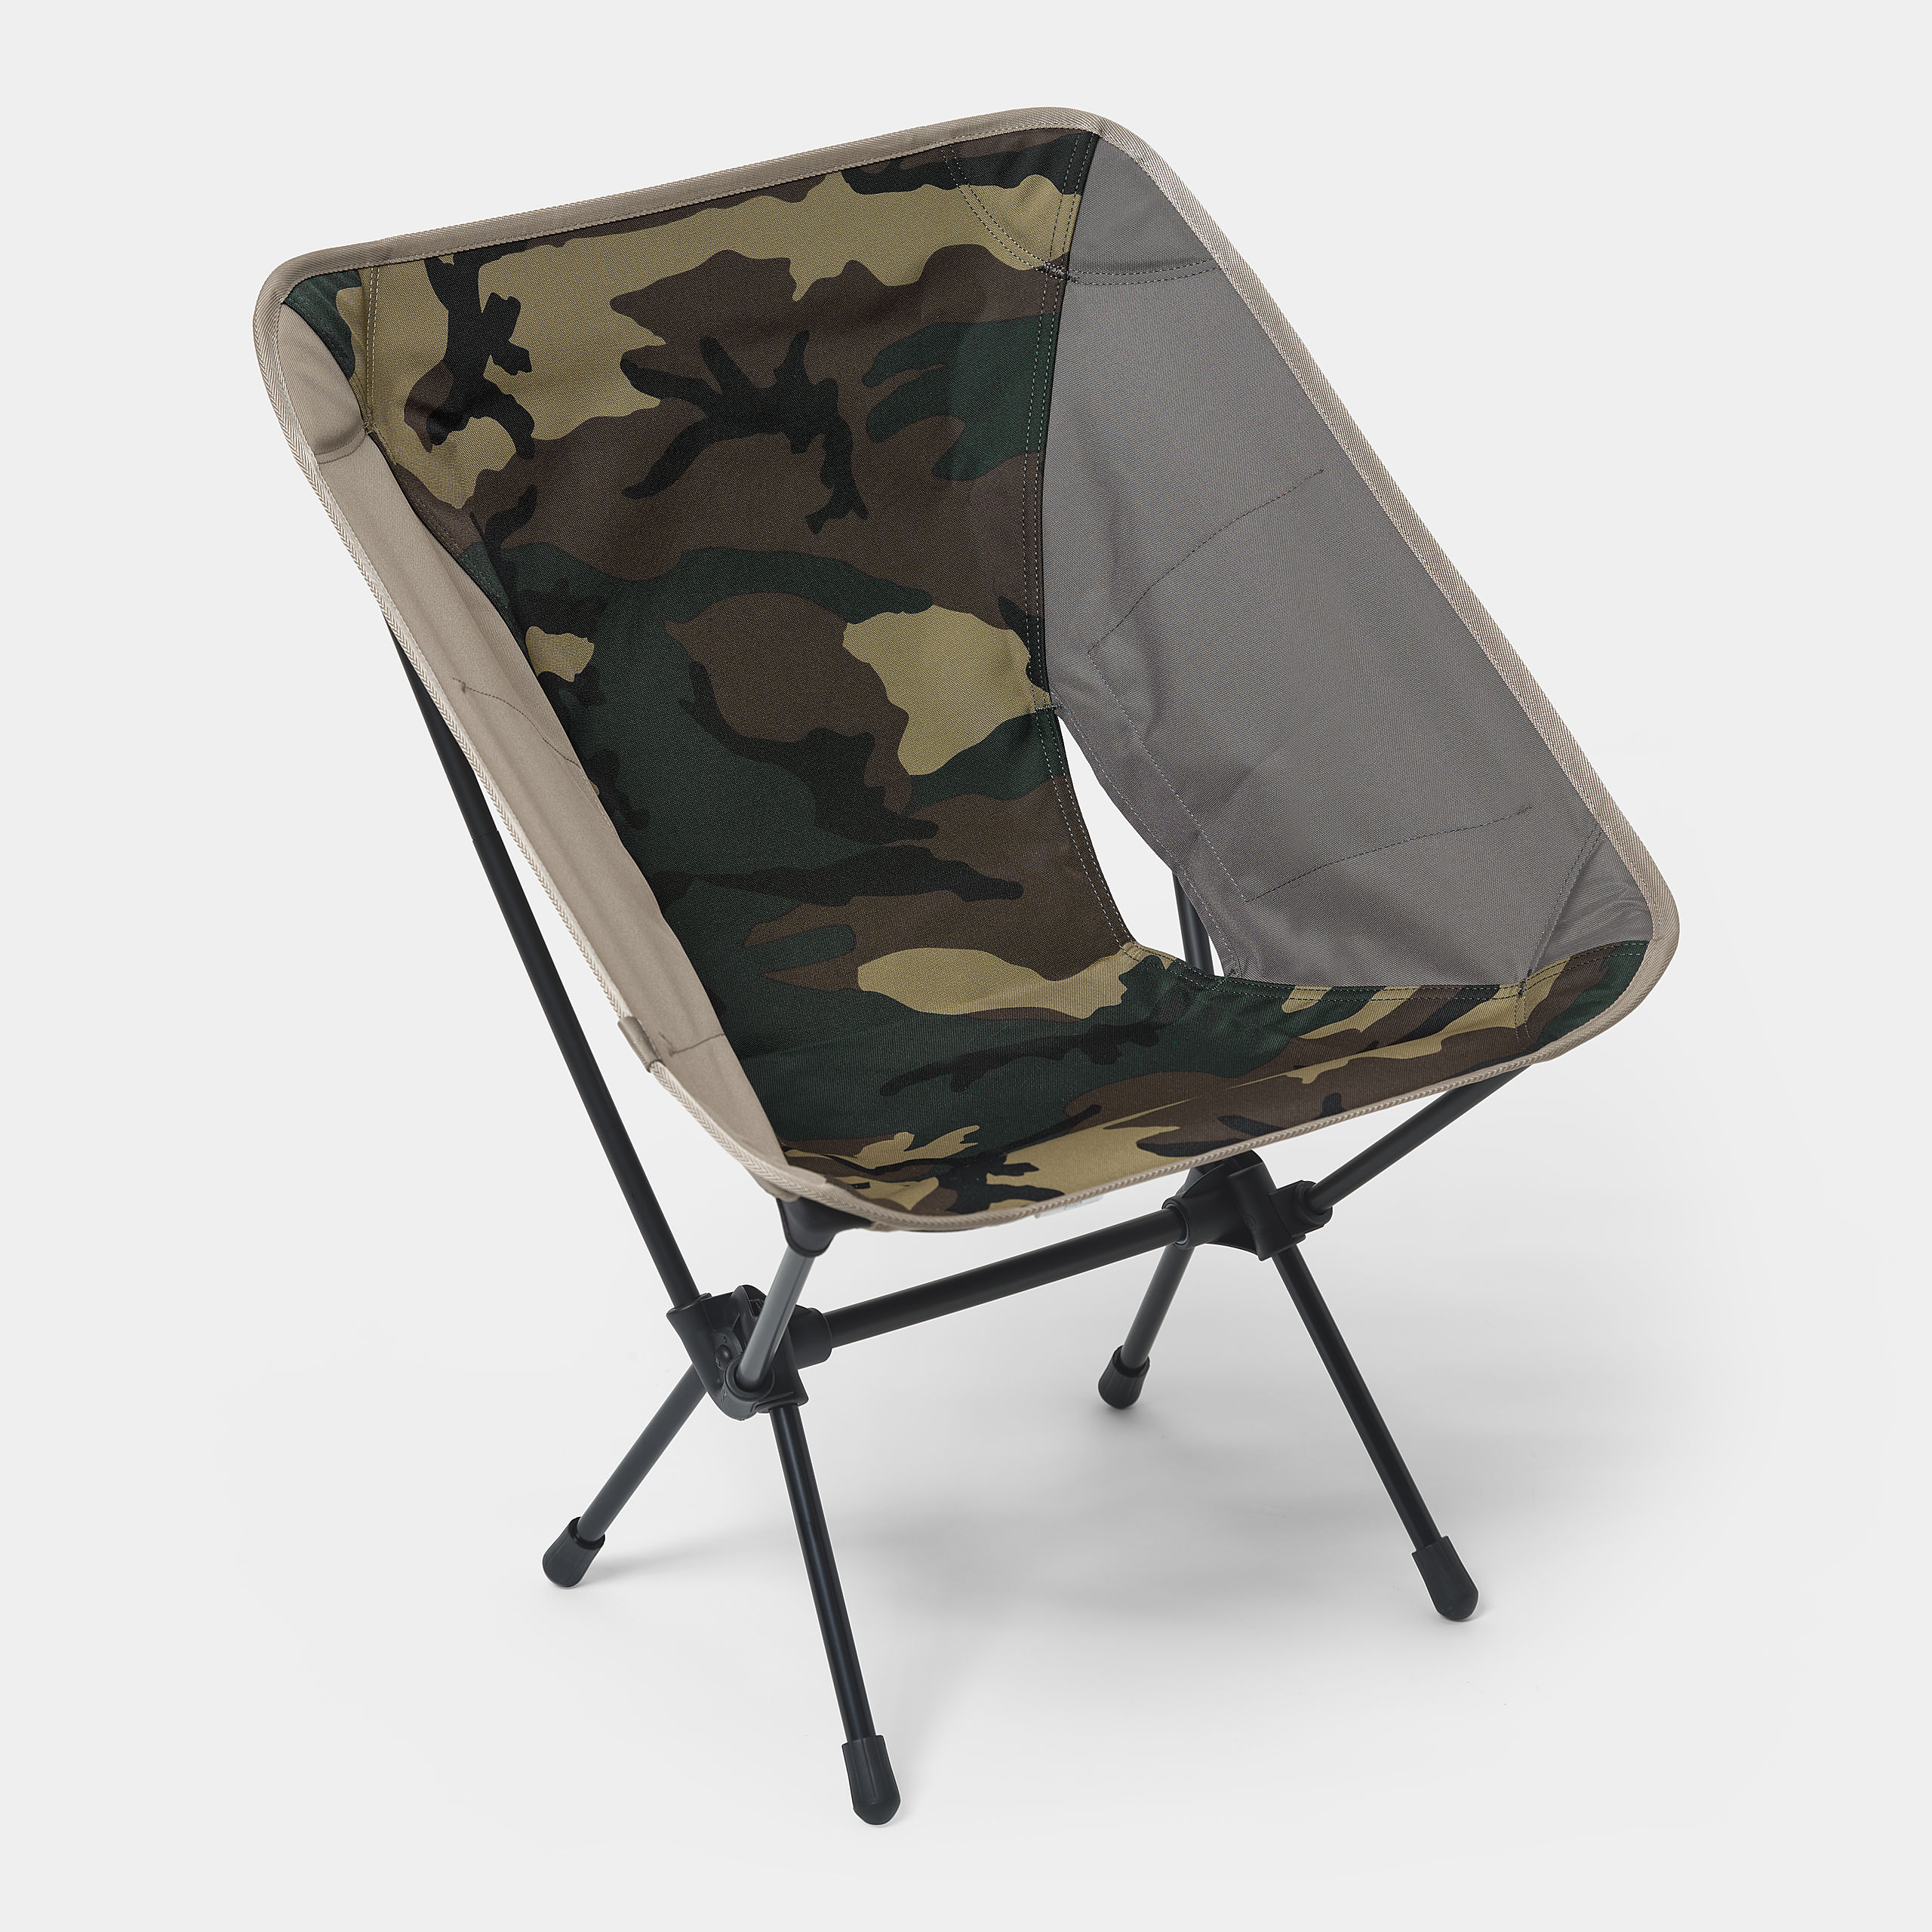 carhartt-wip-x-helinox-valiant-4-tactical-chair-camo-laurel-black-air-force-grey-leather-front